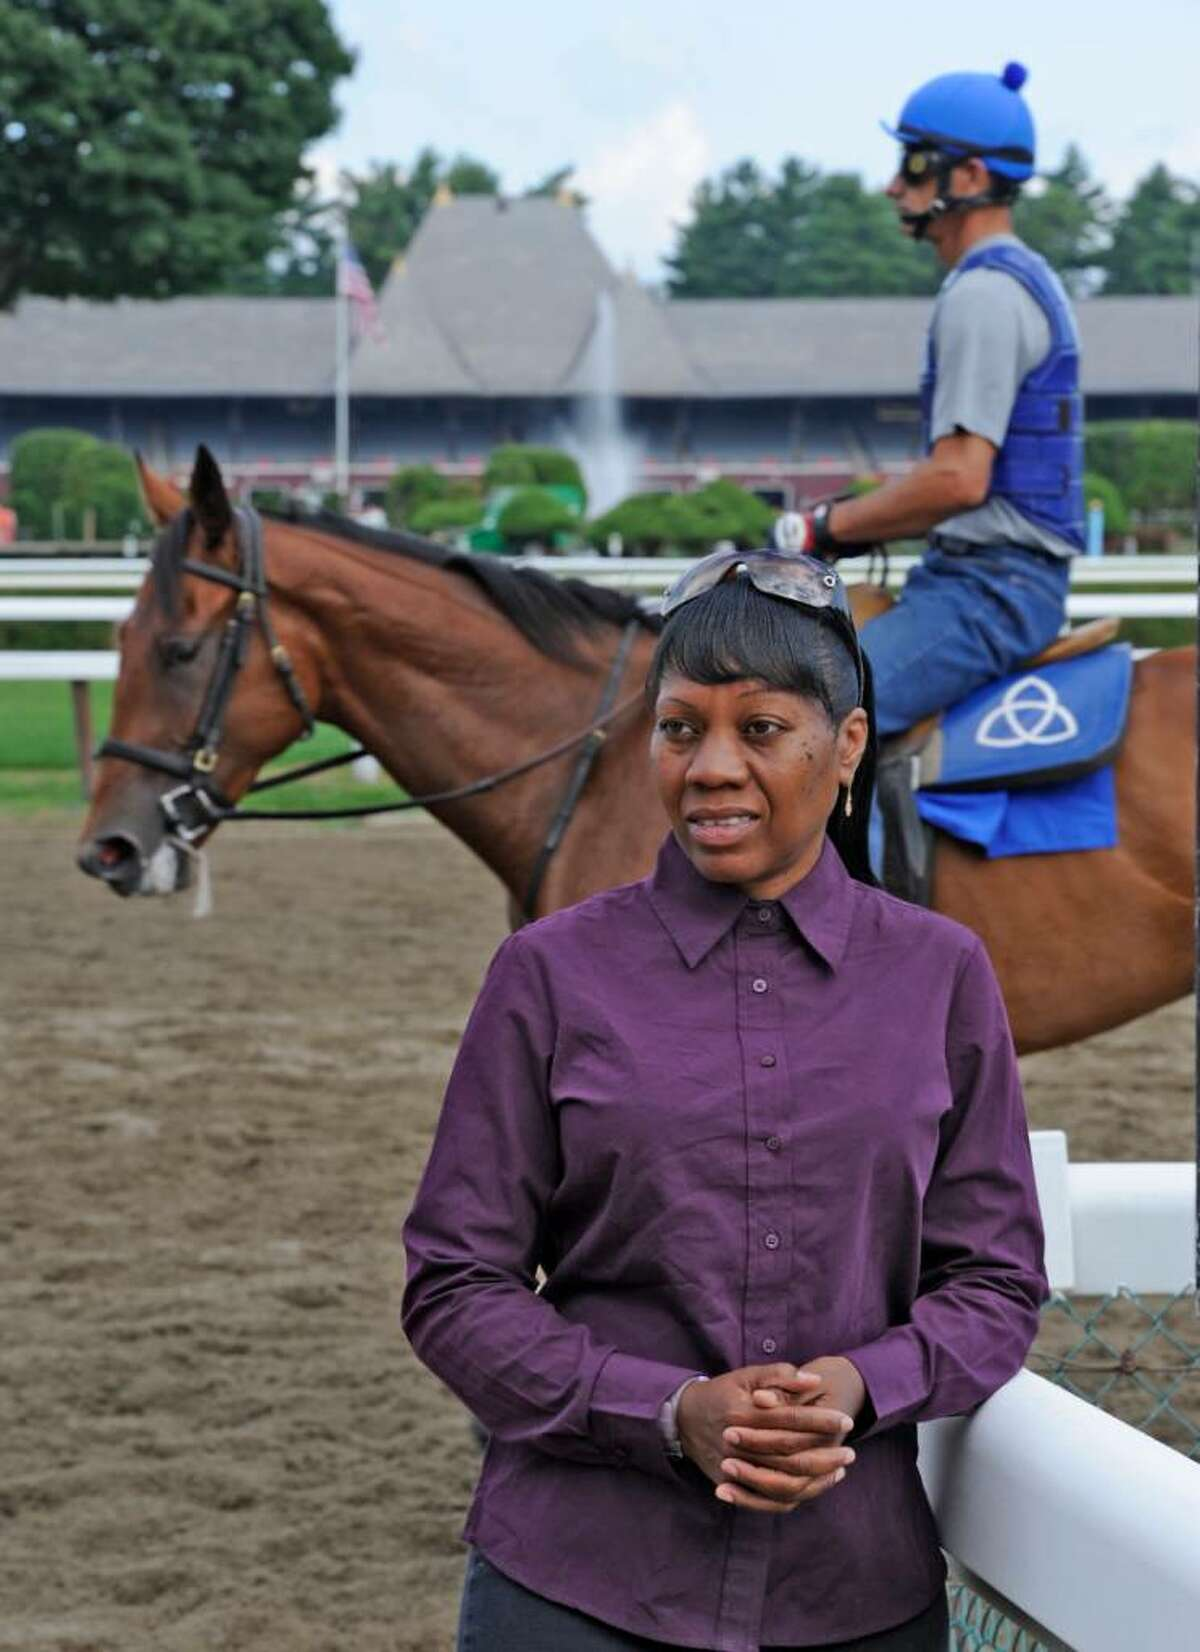 Saudi Burton, a gap attendant at the Saratoga Race Course, stands near Barn 22. She's been trying to get a job with Sheikh Mohammed bin Rashid Al Maktoum, a thoroughbred horse owner who is also the ruler of Dubai and vice president and prime minister of the United Arab Emirates. (Skip Dickstein/Times Union)